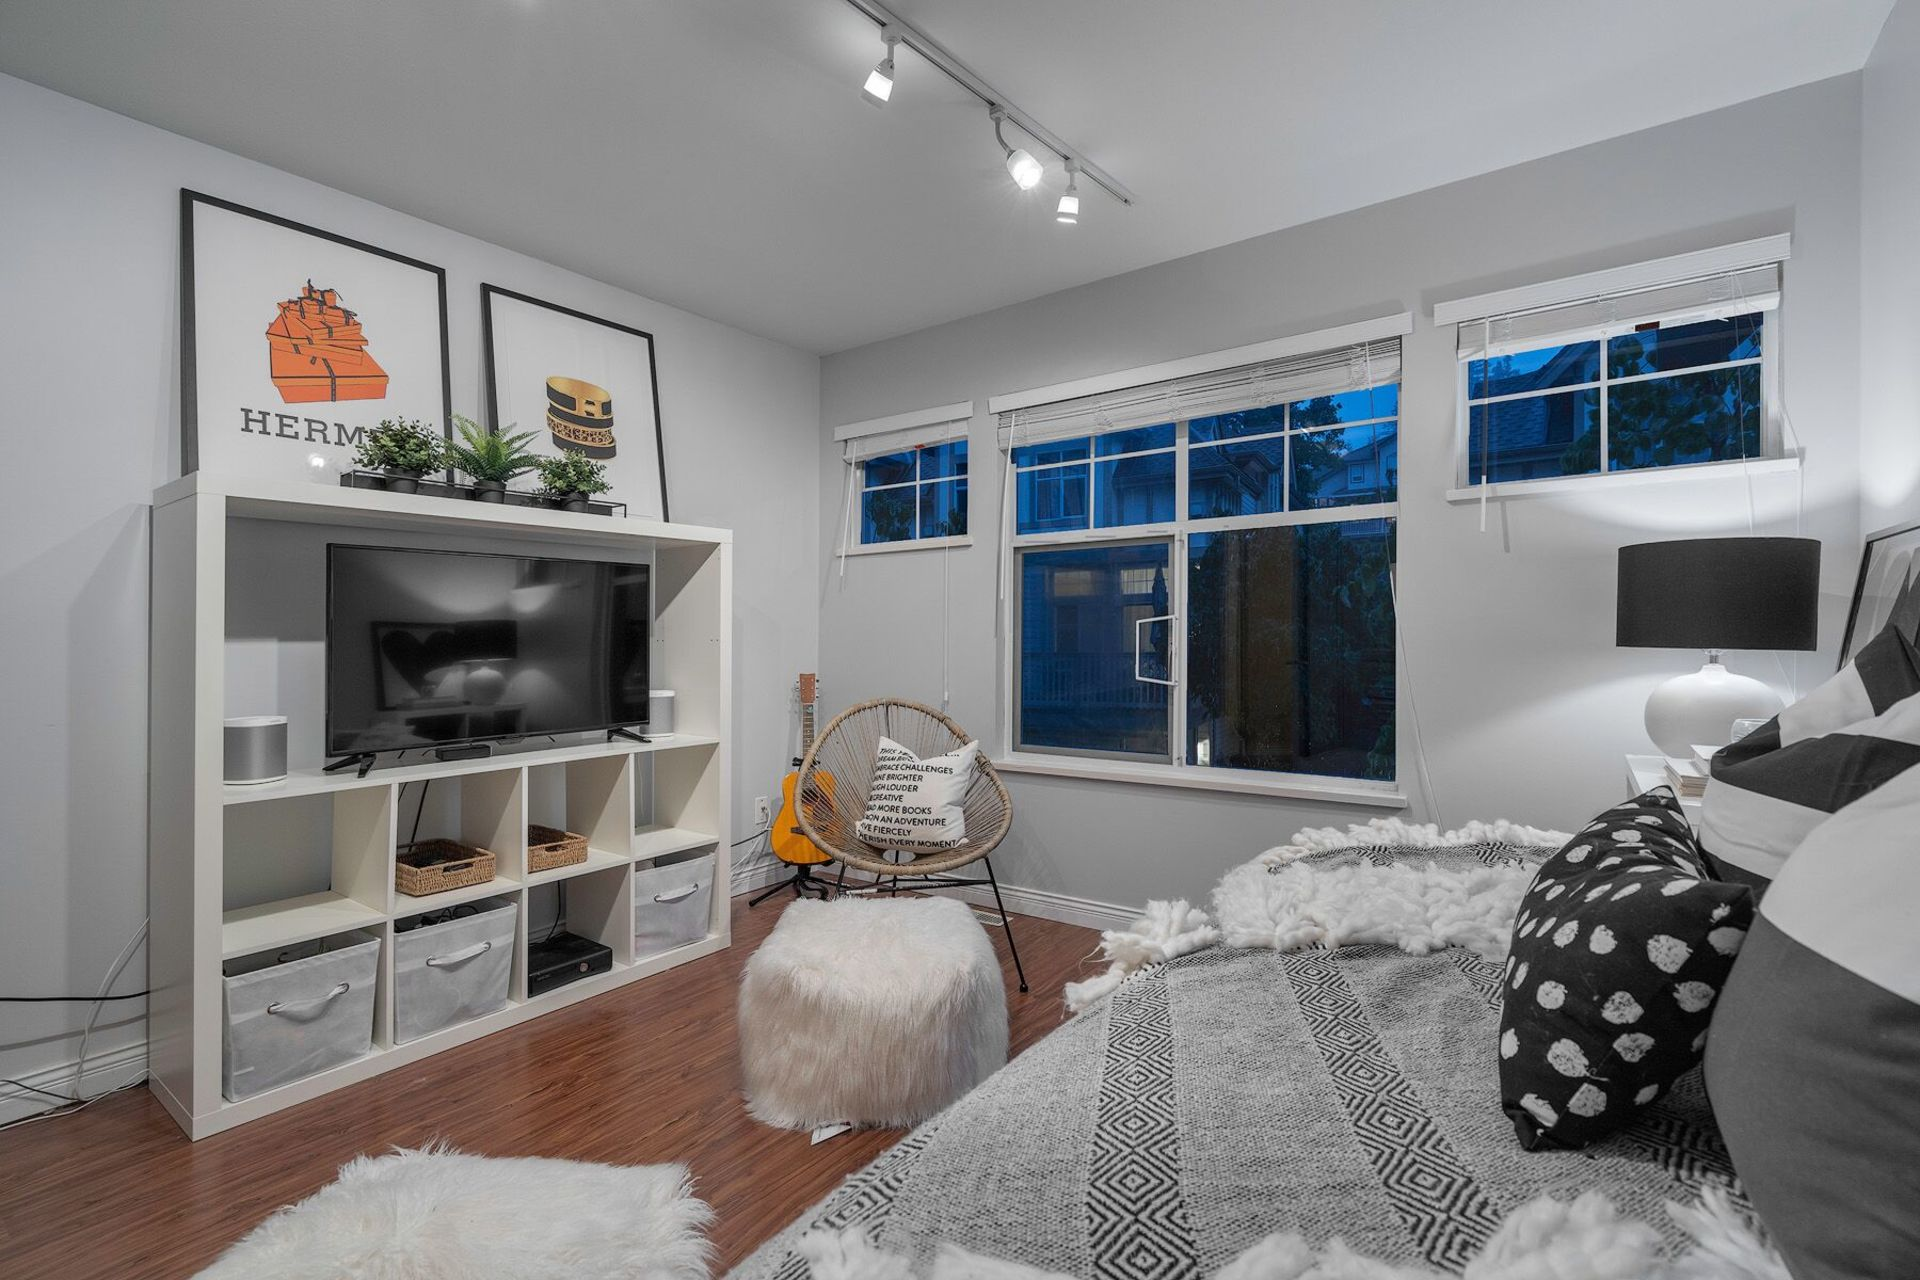 8hzx1mkq at 1 - 1 Aspenwood Drive, Heritage Woods PM, Port Moody